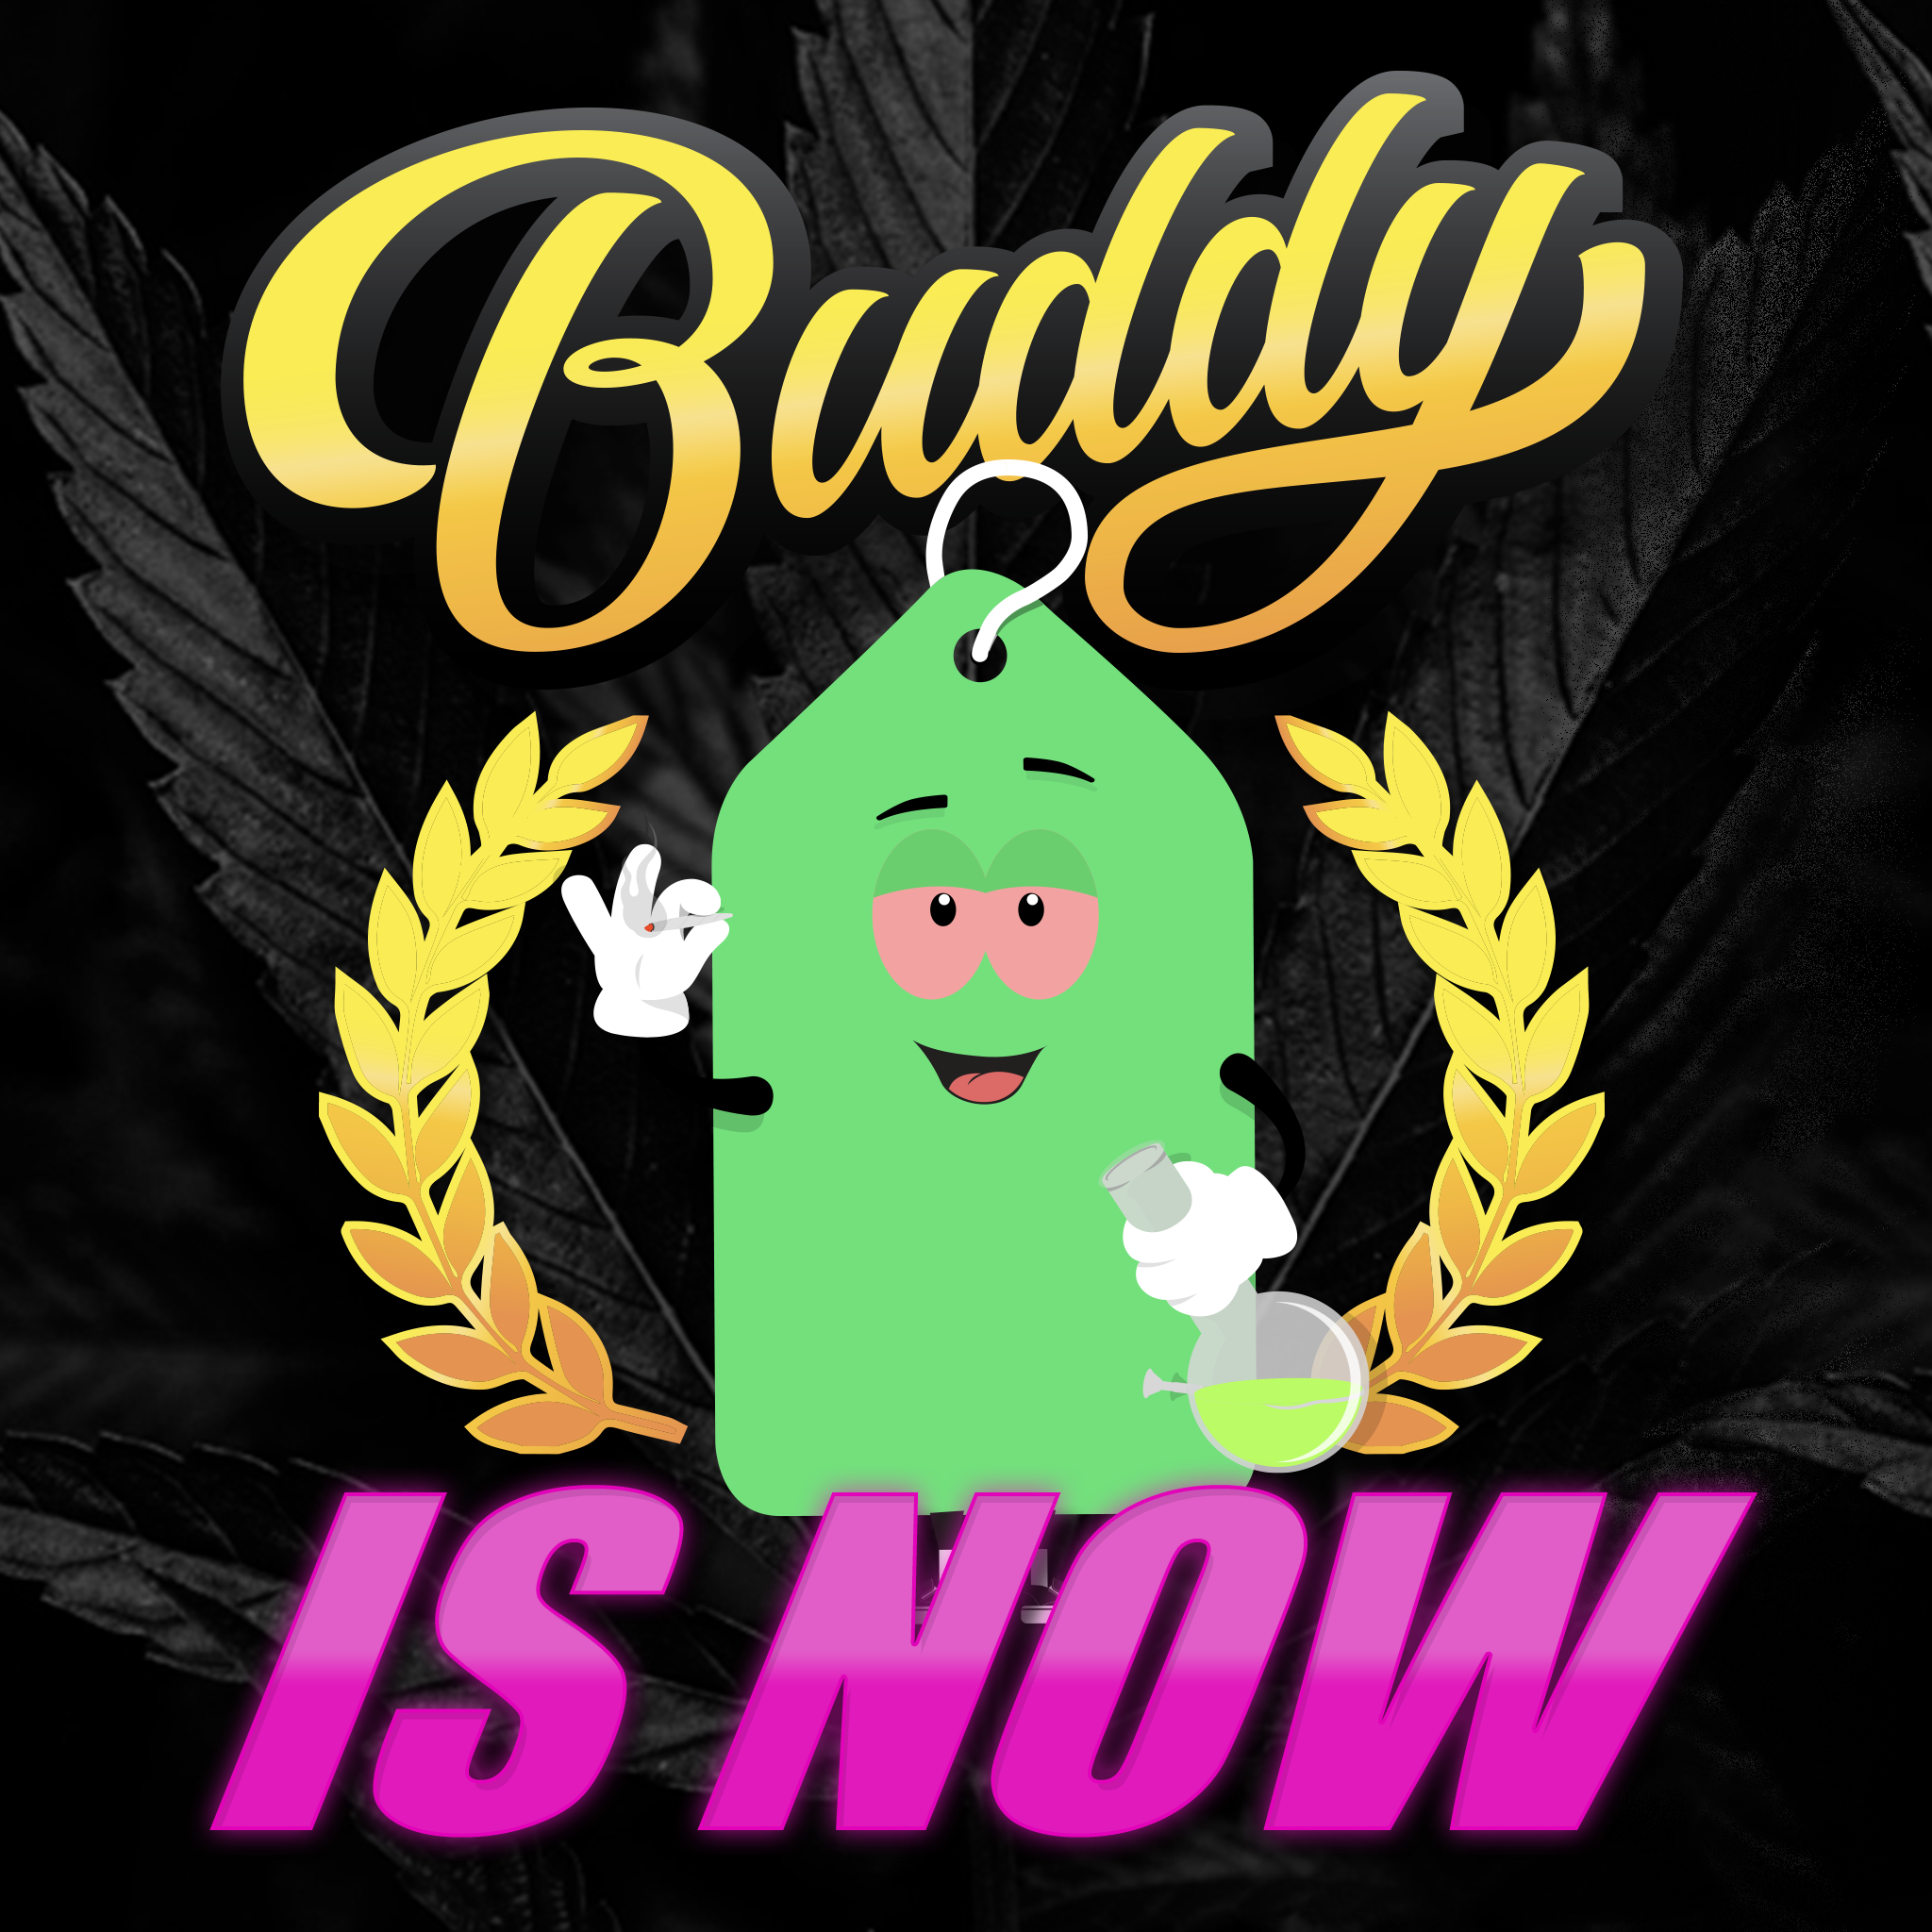 Buddy_Post-1_Instagram-1.png